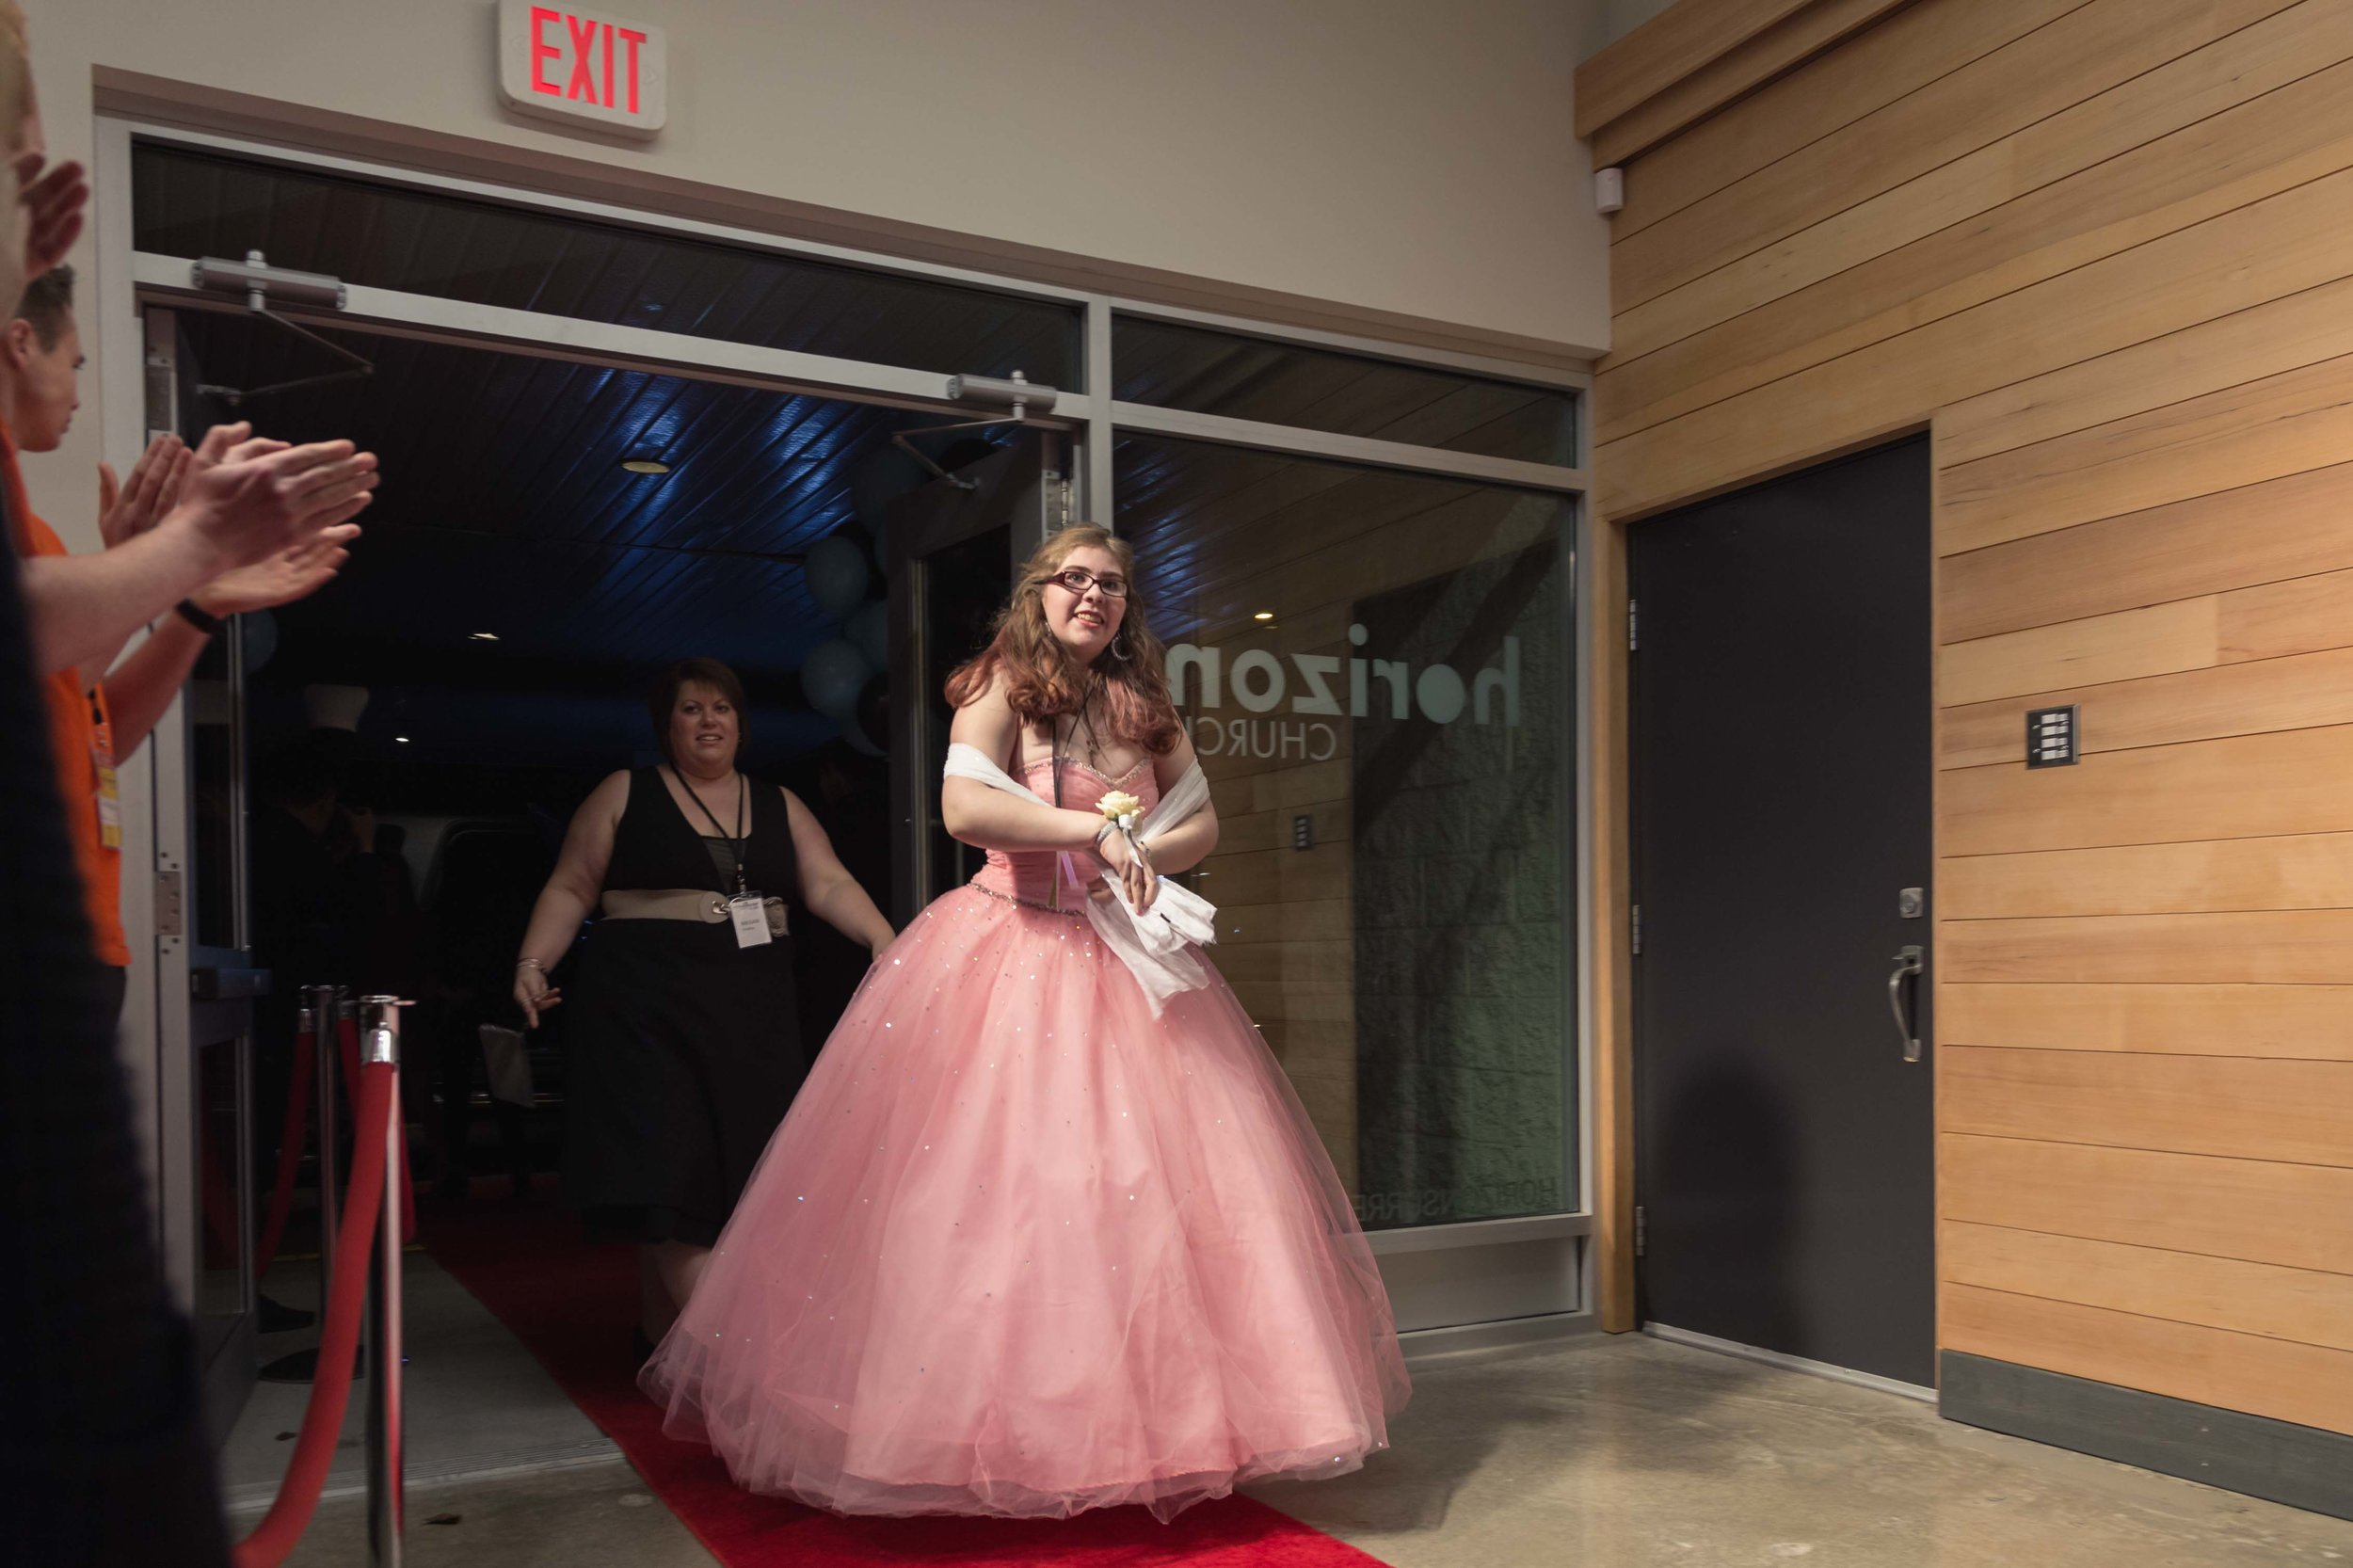 InBetweenDreamsWedding_NightToShine2018_HorizonChurch (262 of 514).jpg